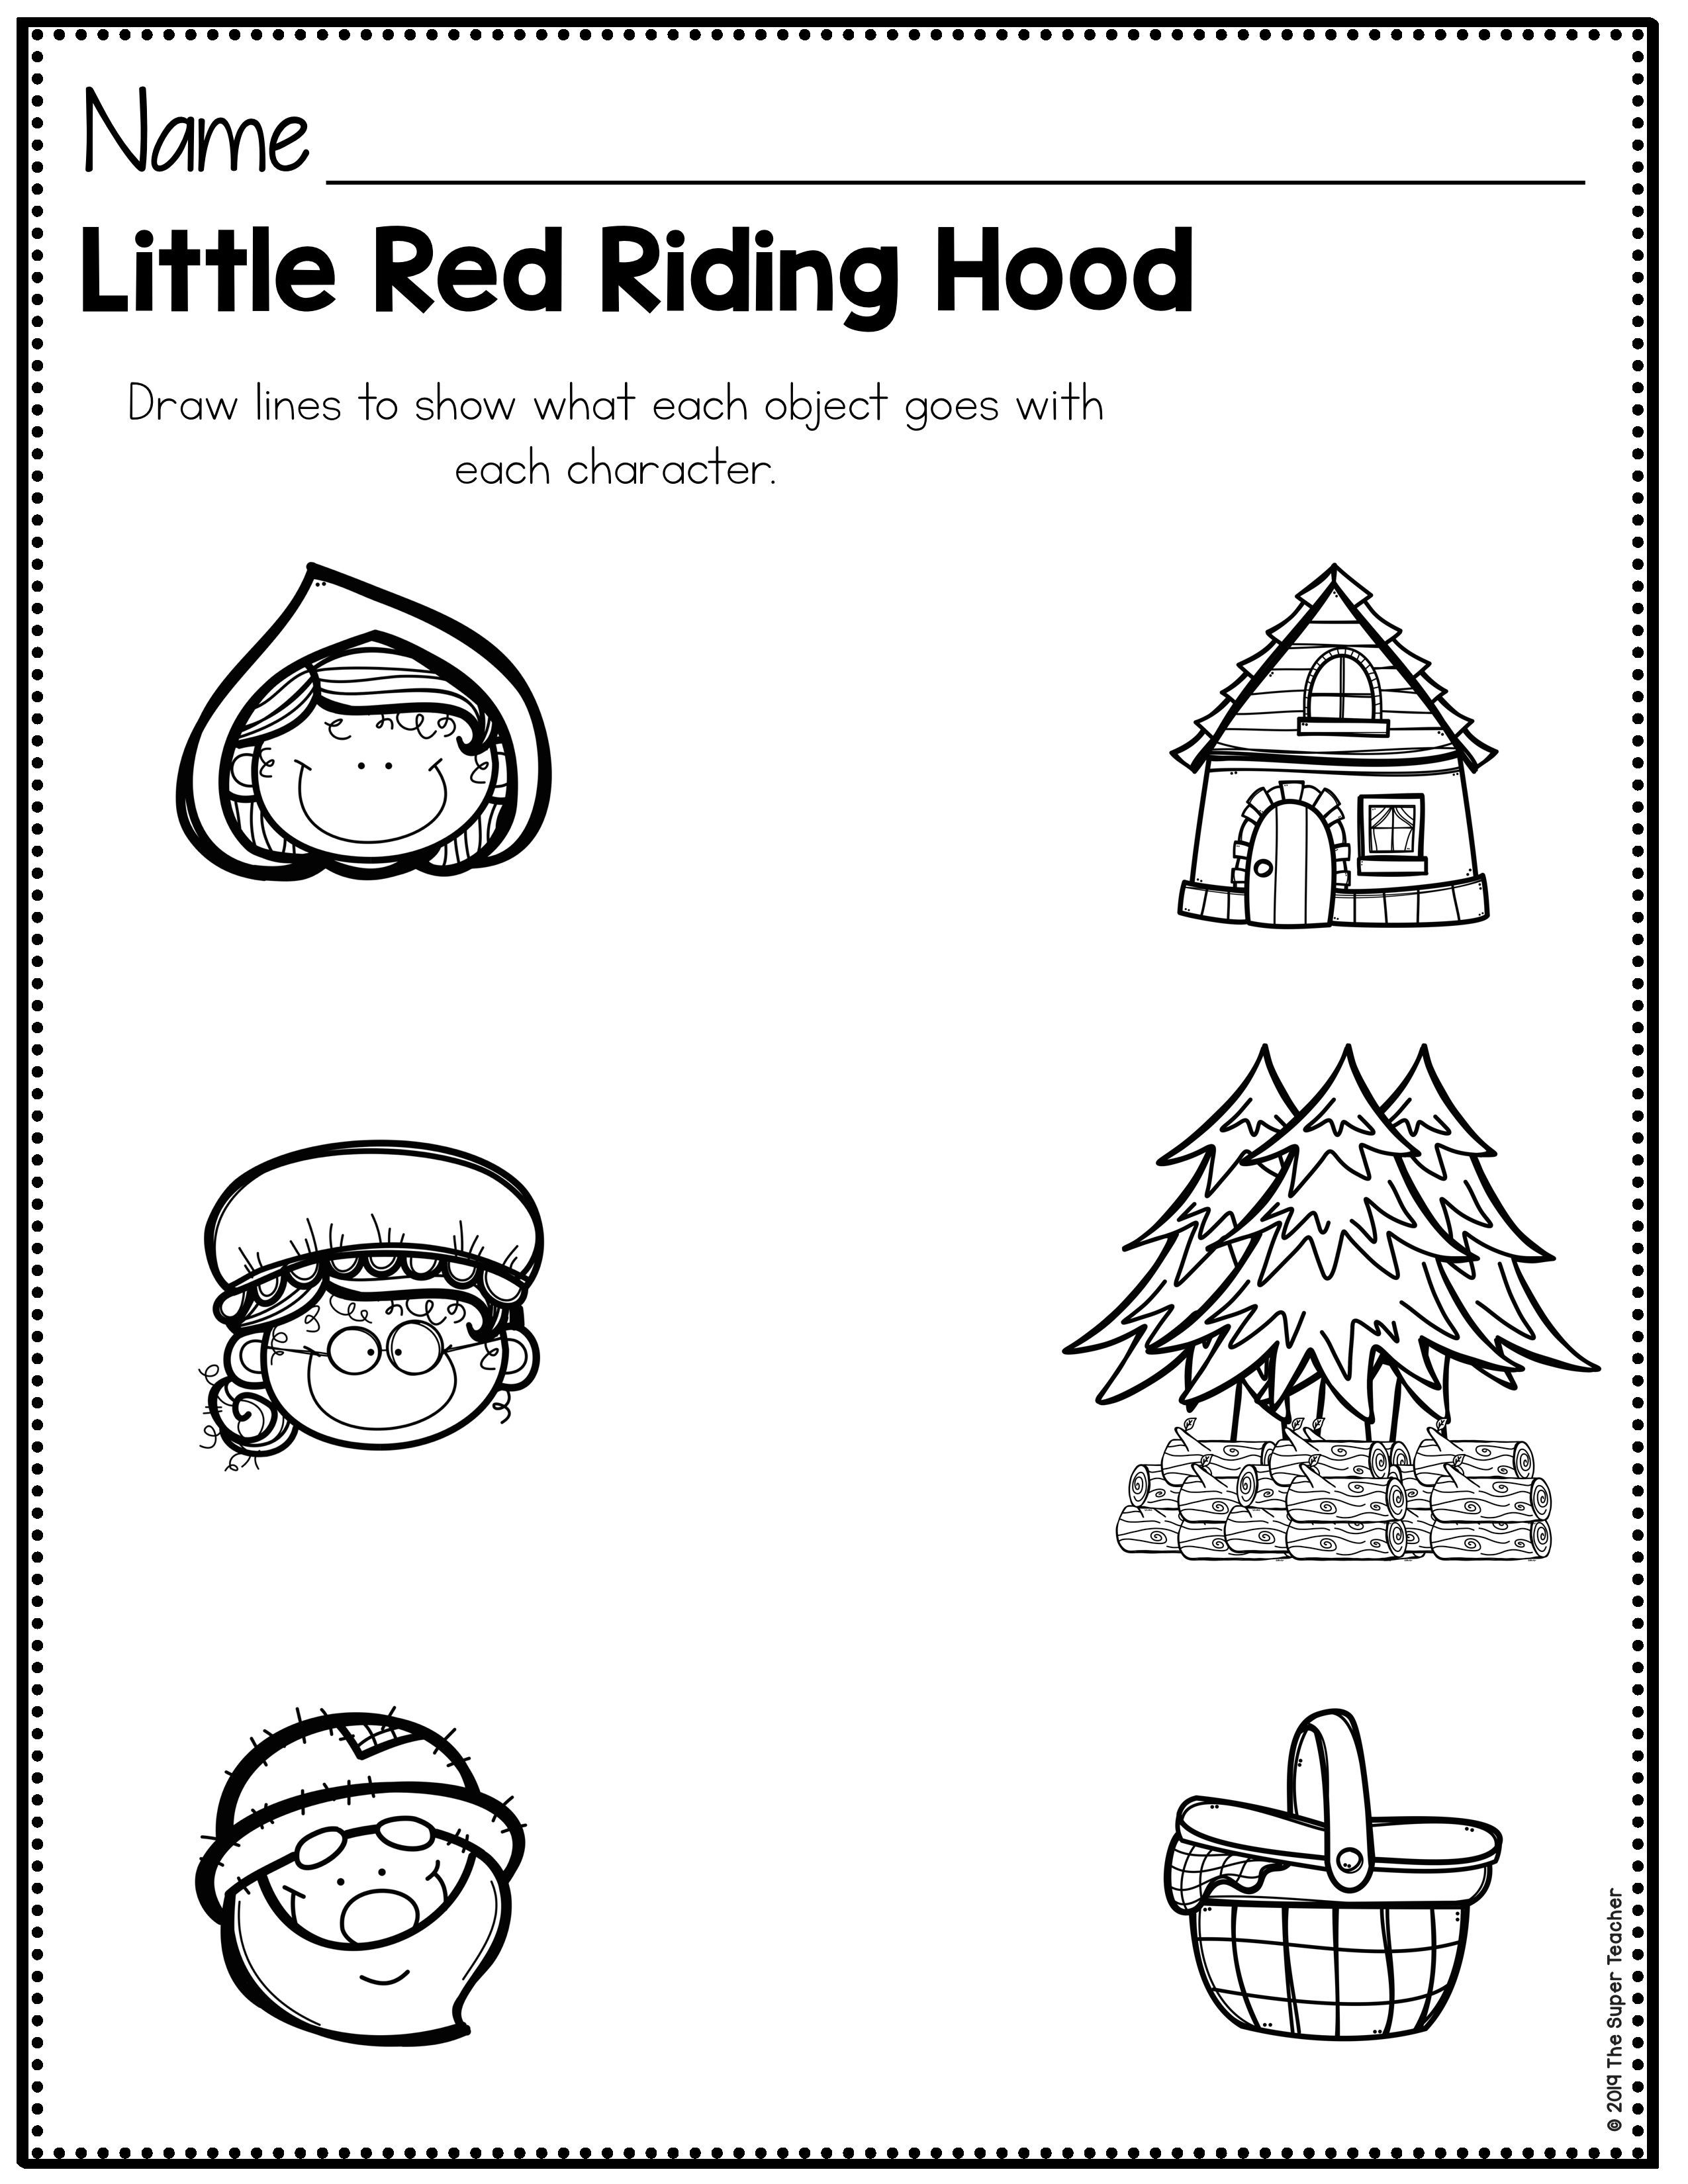 These Little Red Riding Hood Printables Are Awesome For Teaching Story Elements Like Character Sett Red Riding Hood Story Teaching Story Elements Story Retell